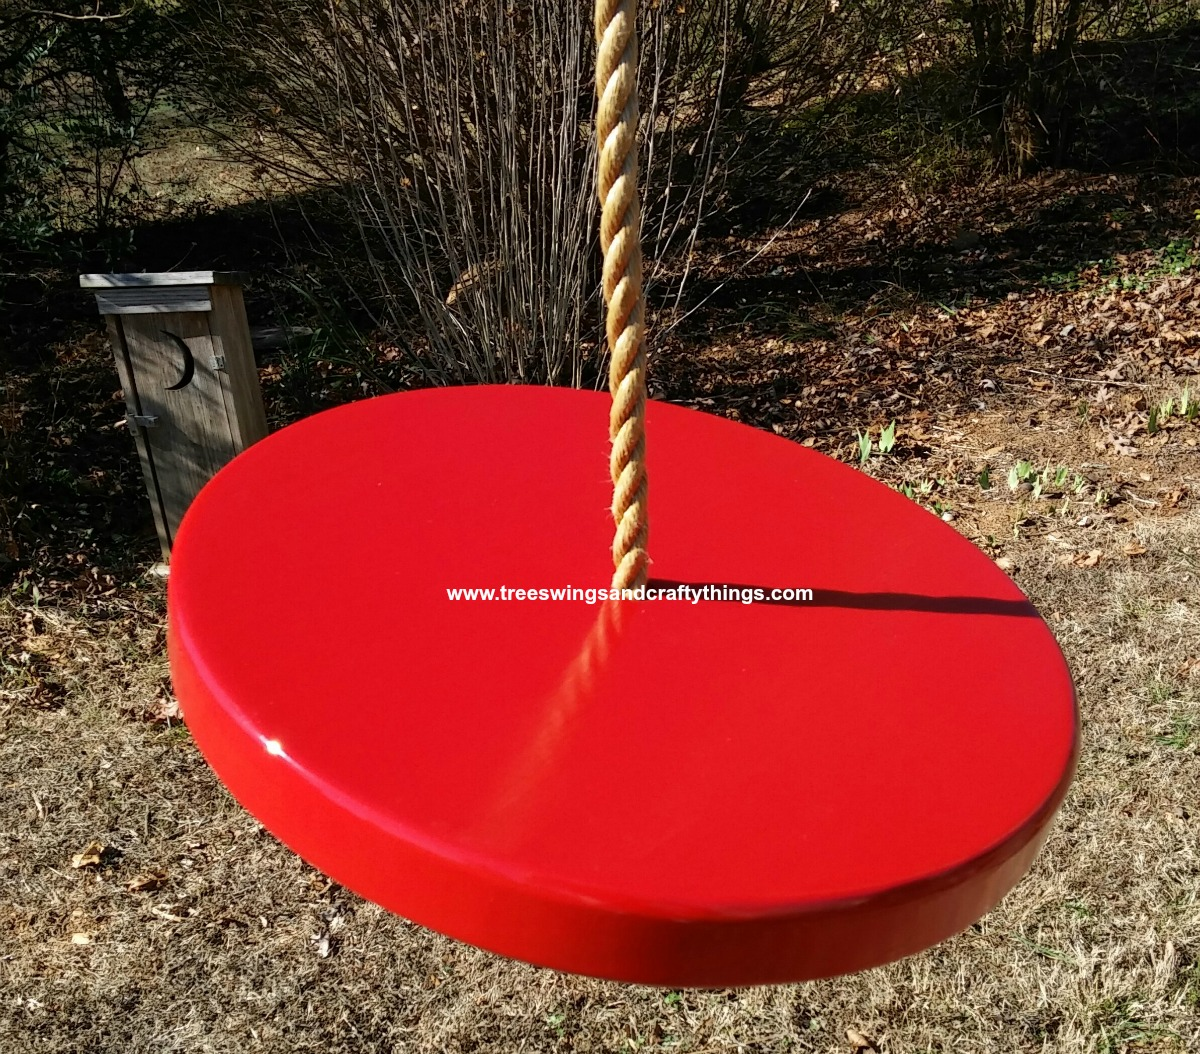 Red Disc Tree Swing